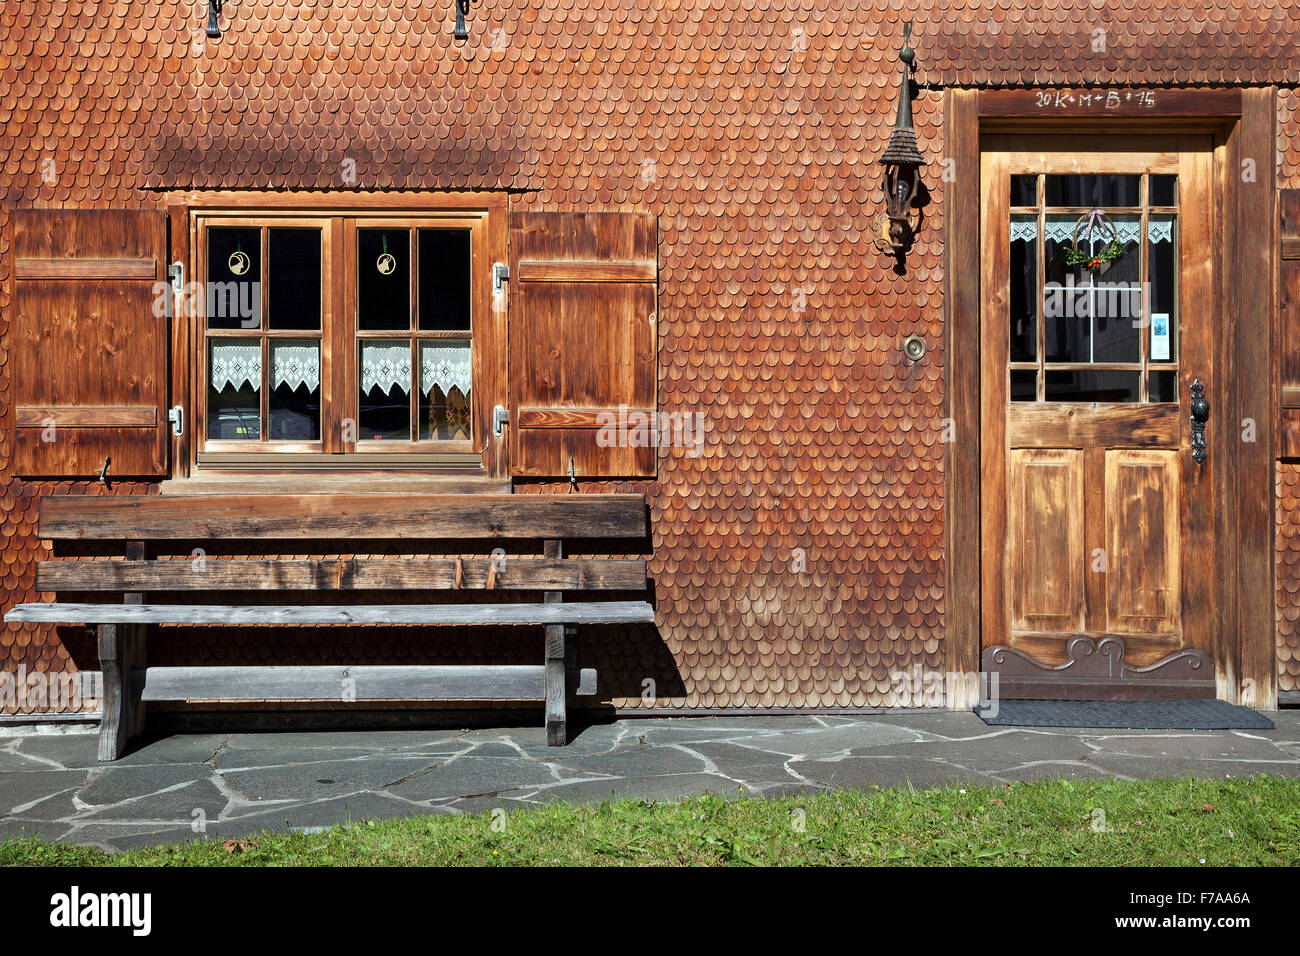 shingle facade stockfotos shingle facade bilder alamy. Black Bedroom Furniture Sets. Home Design Ideas